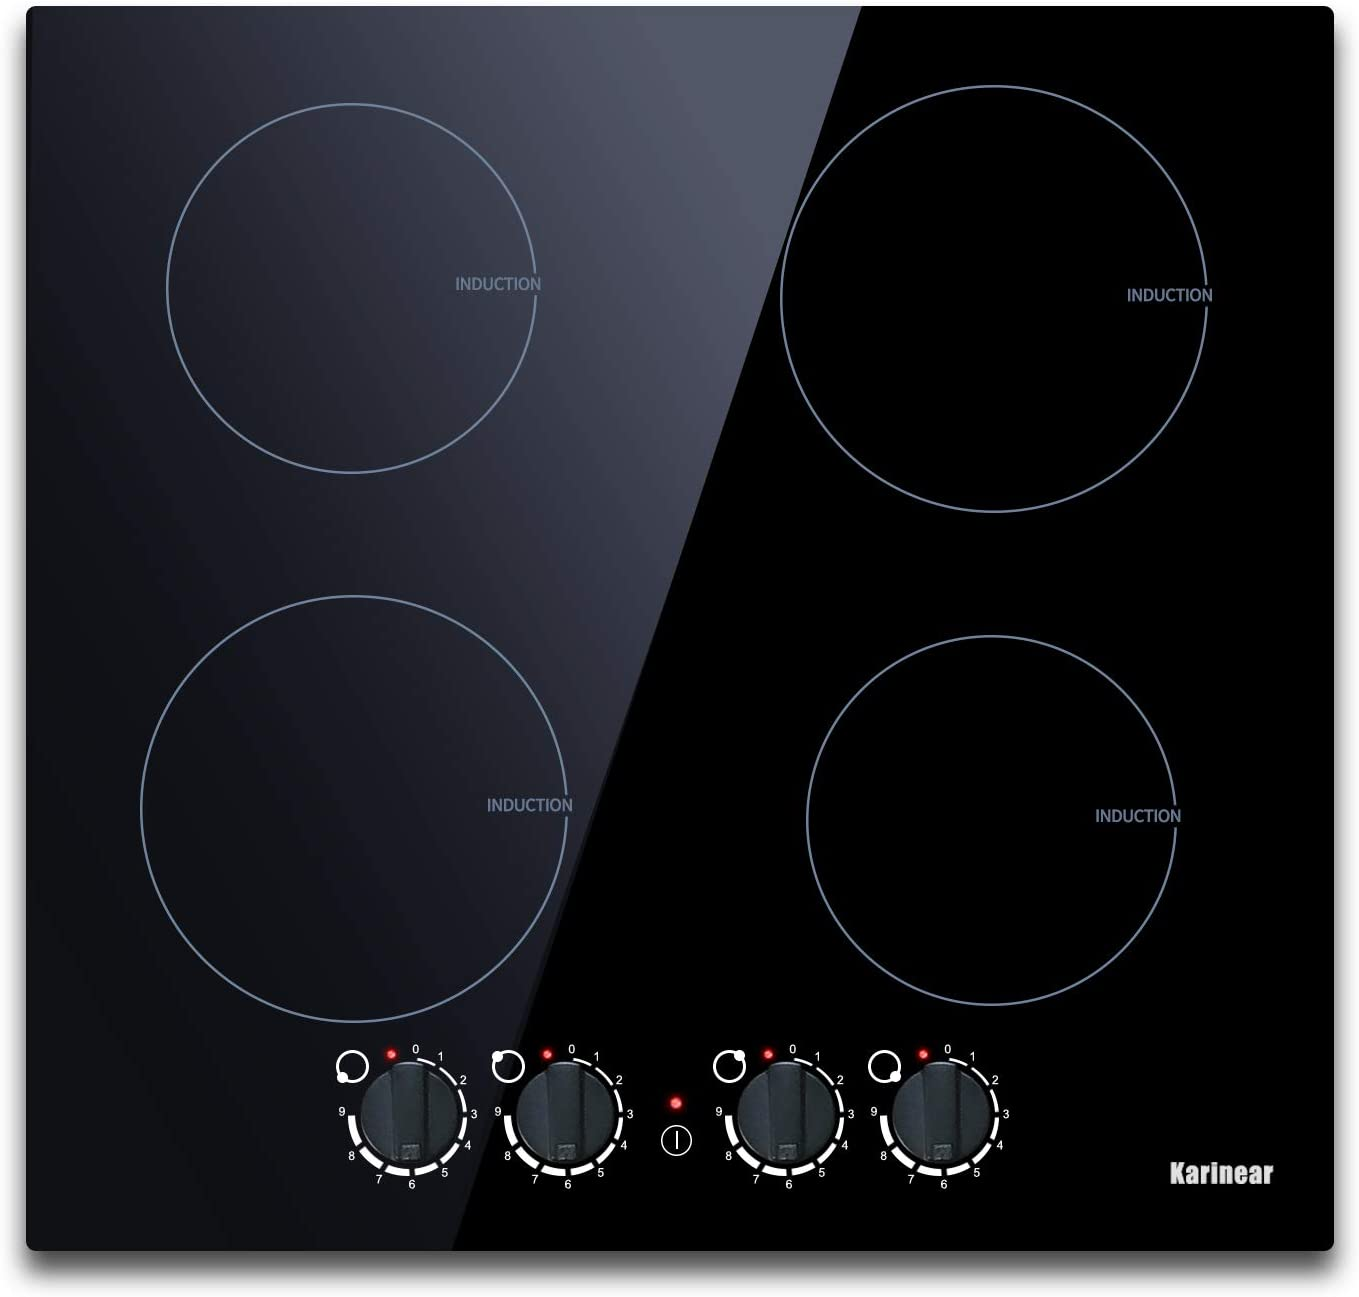 Induction Cooktop 4 Burner, 7000W Electric Induction Cooker Kitchen Countertop Burners with Electronic Knob Control, Built-in Induction Stovetop Hard Wired, 9 Power Levels.